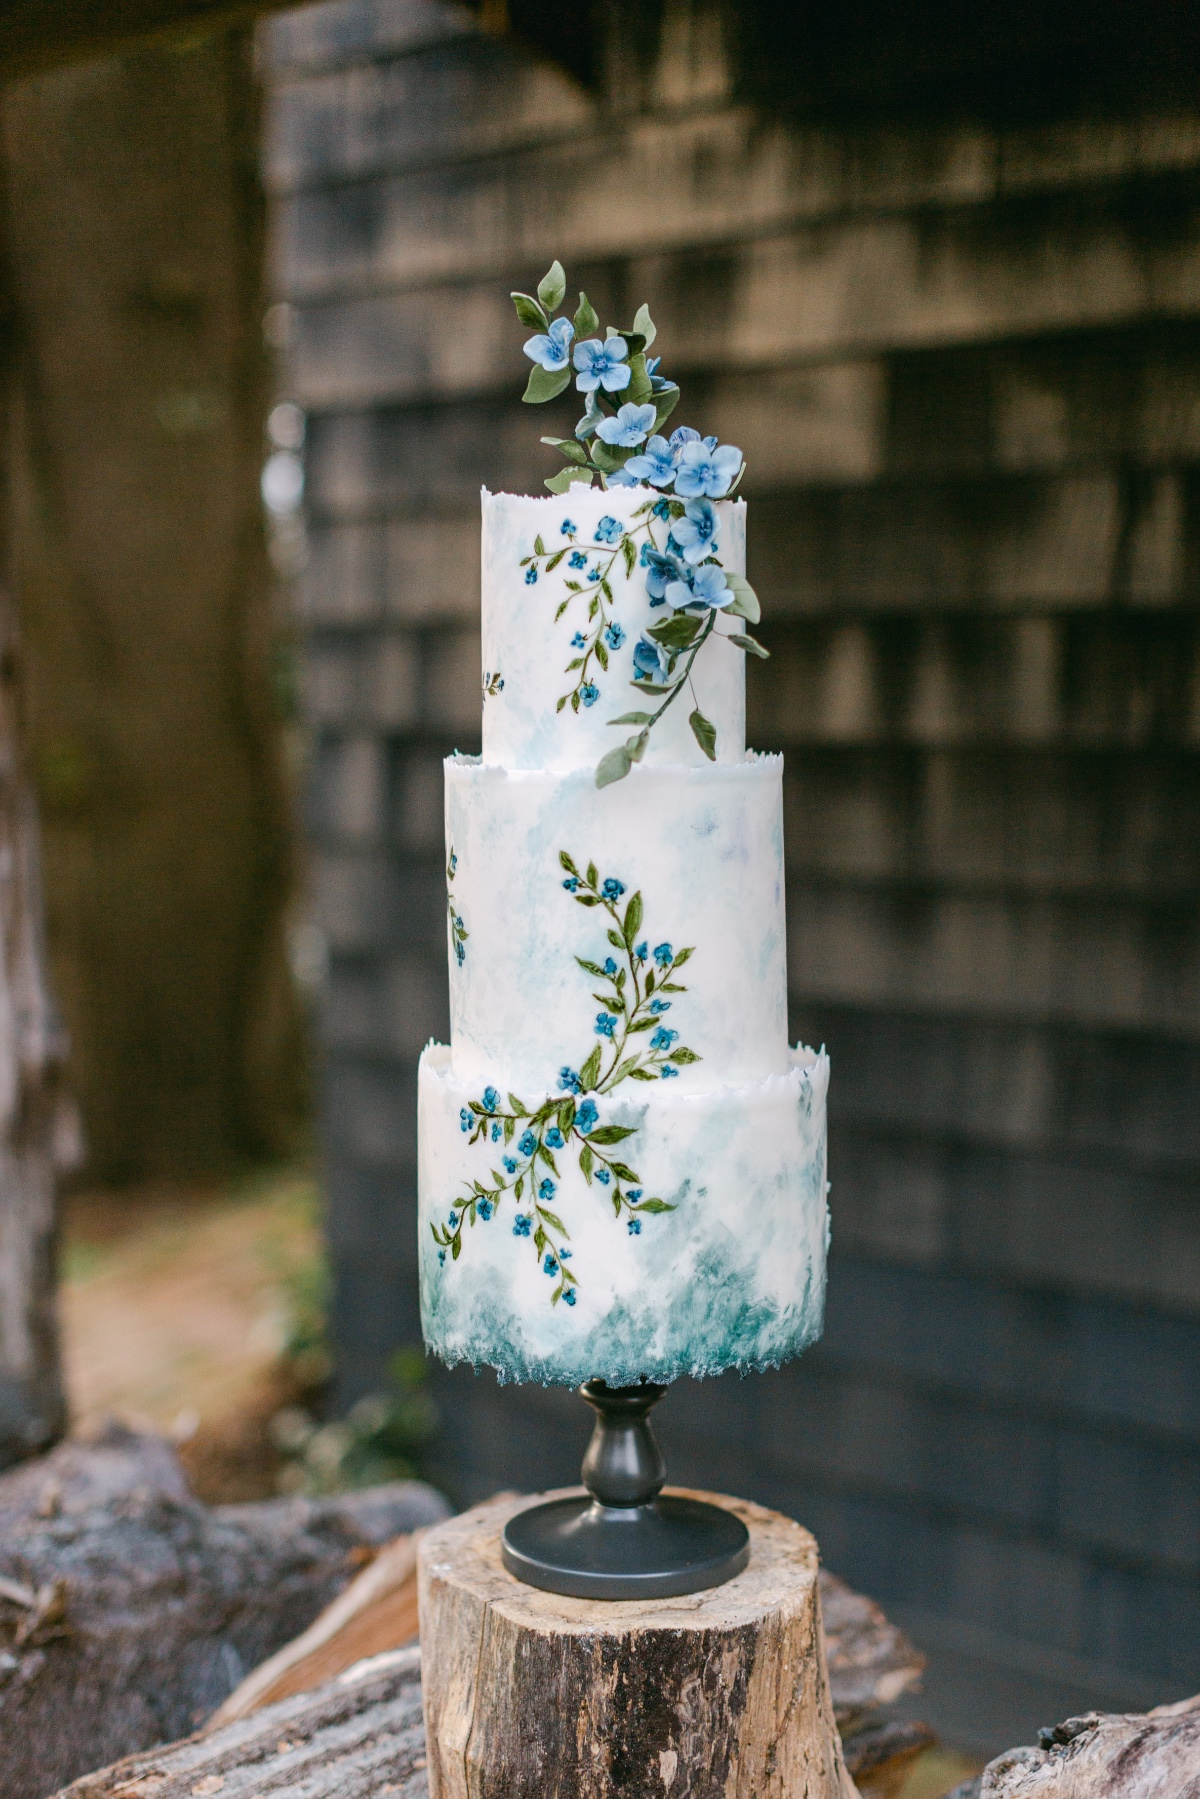 Confectionery Designs blue wedding cake